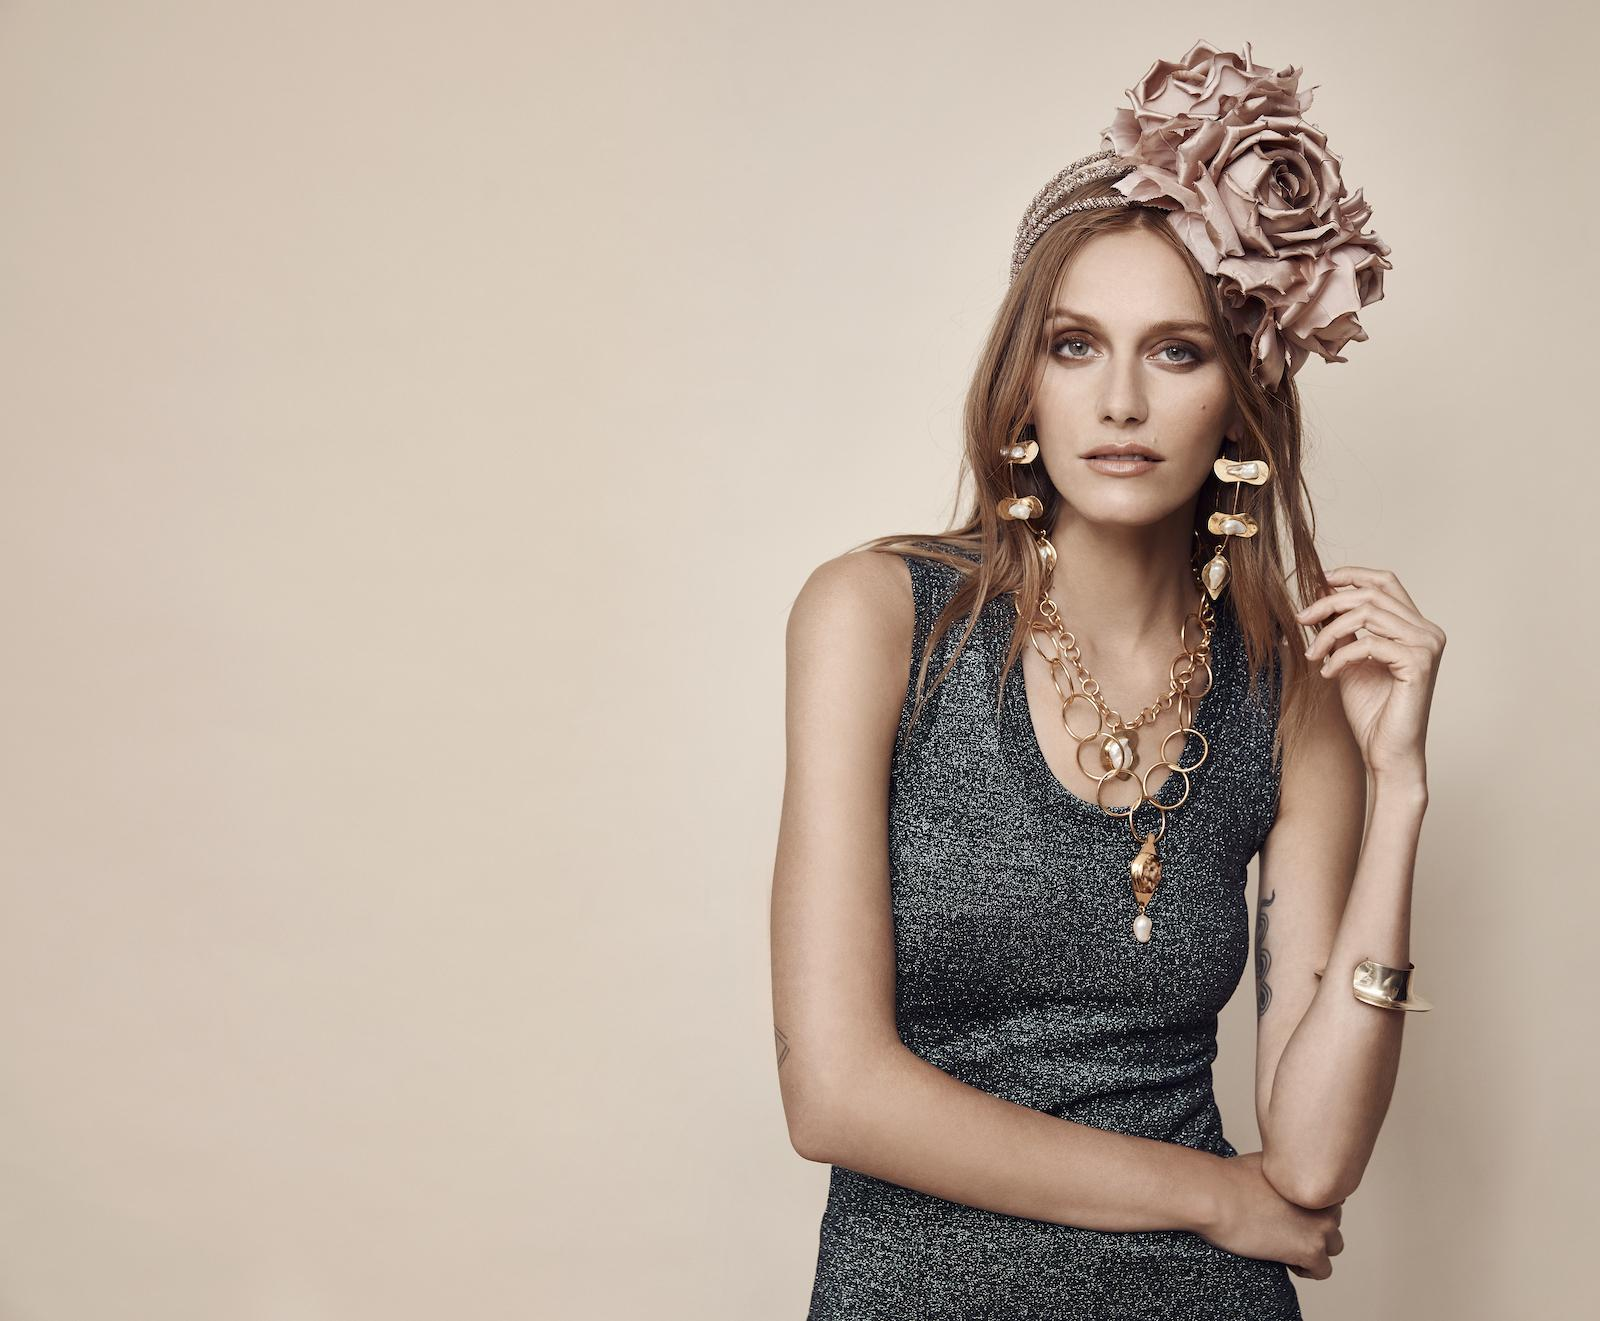 Blush pink floral headpiece on model